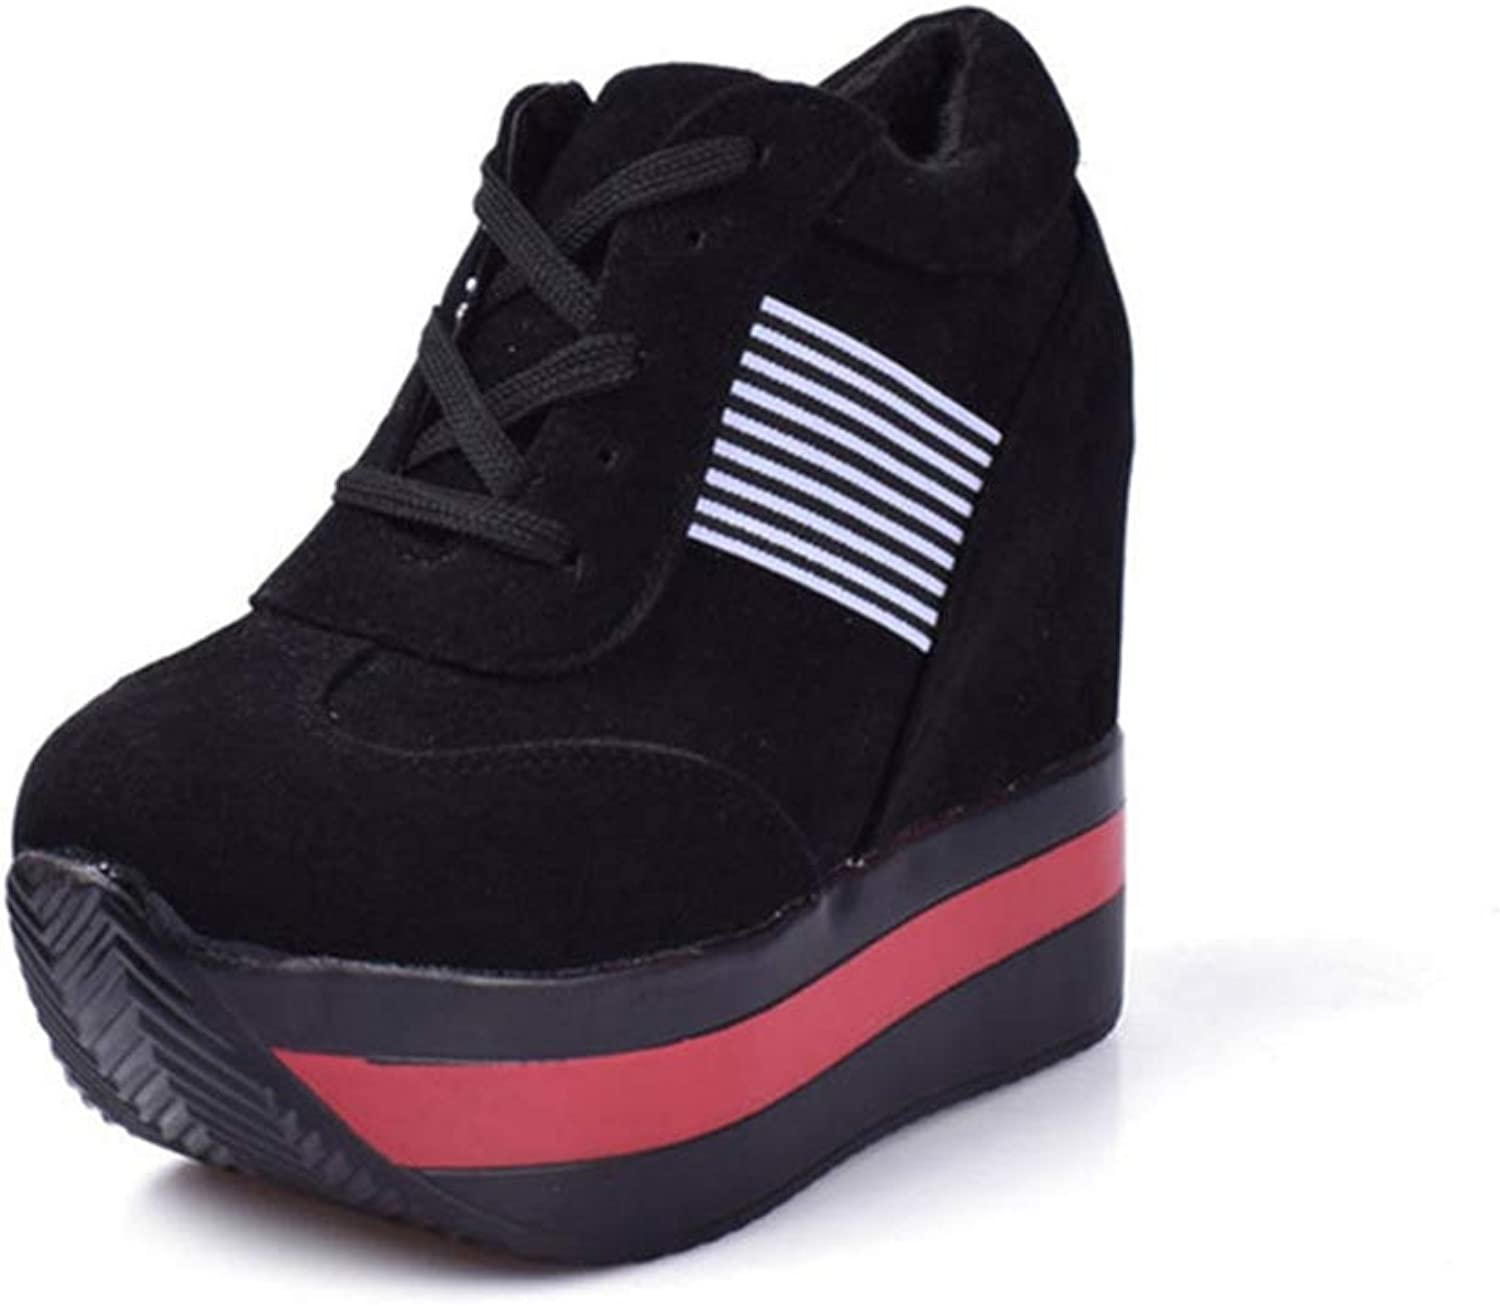 Ghssheh Women High Heels Platform Casual Wedge Sneaker Female Fashion Casual shoes Black 5 M US